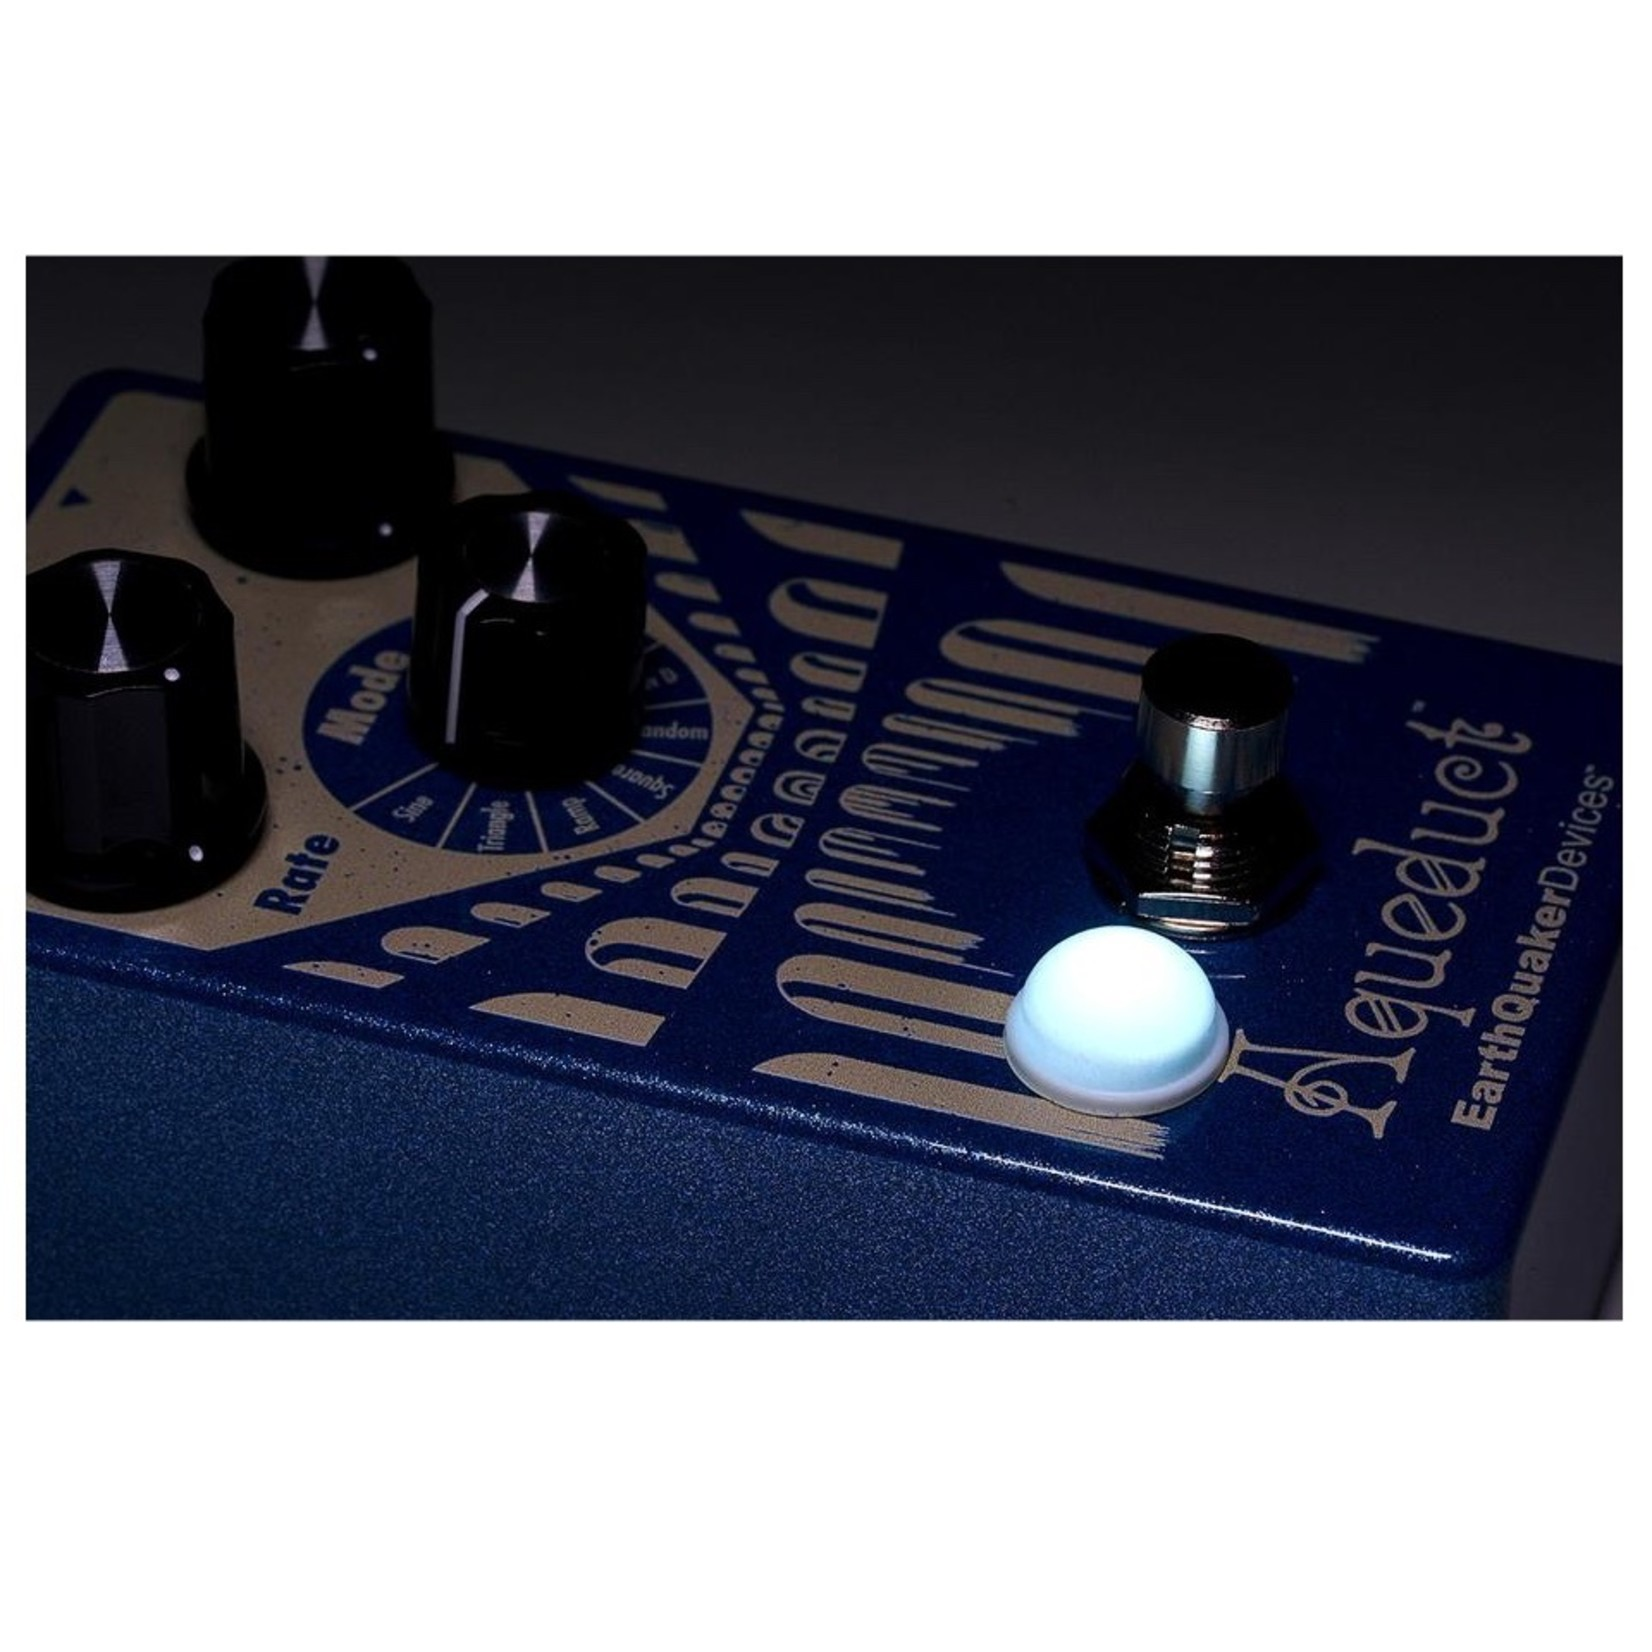 Rockboard Rockboard LED Dampers, Large 10mm (package of 5 refractive domes) - Dim your bright pedal lights!